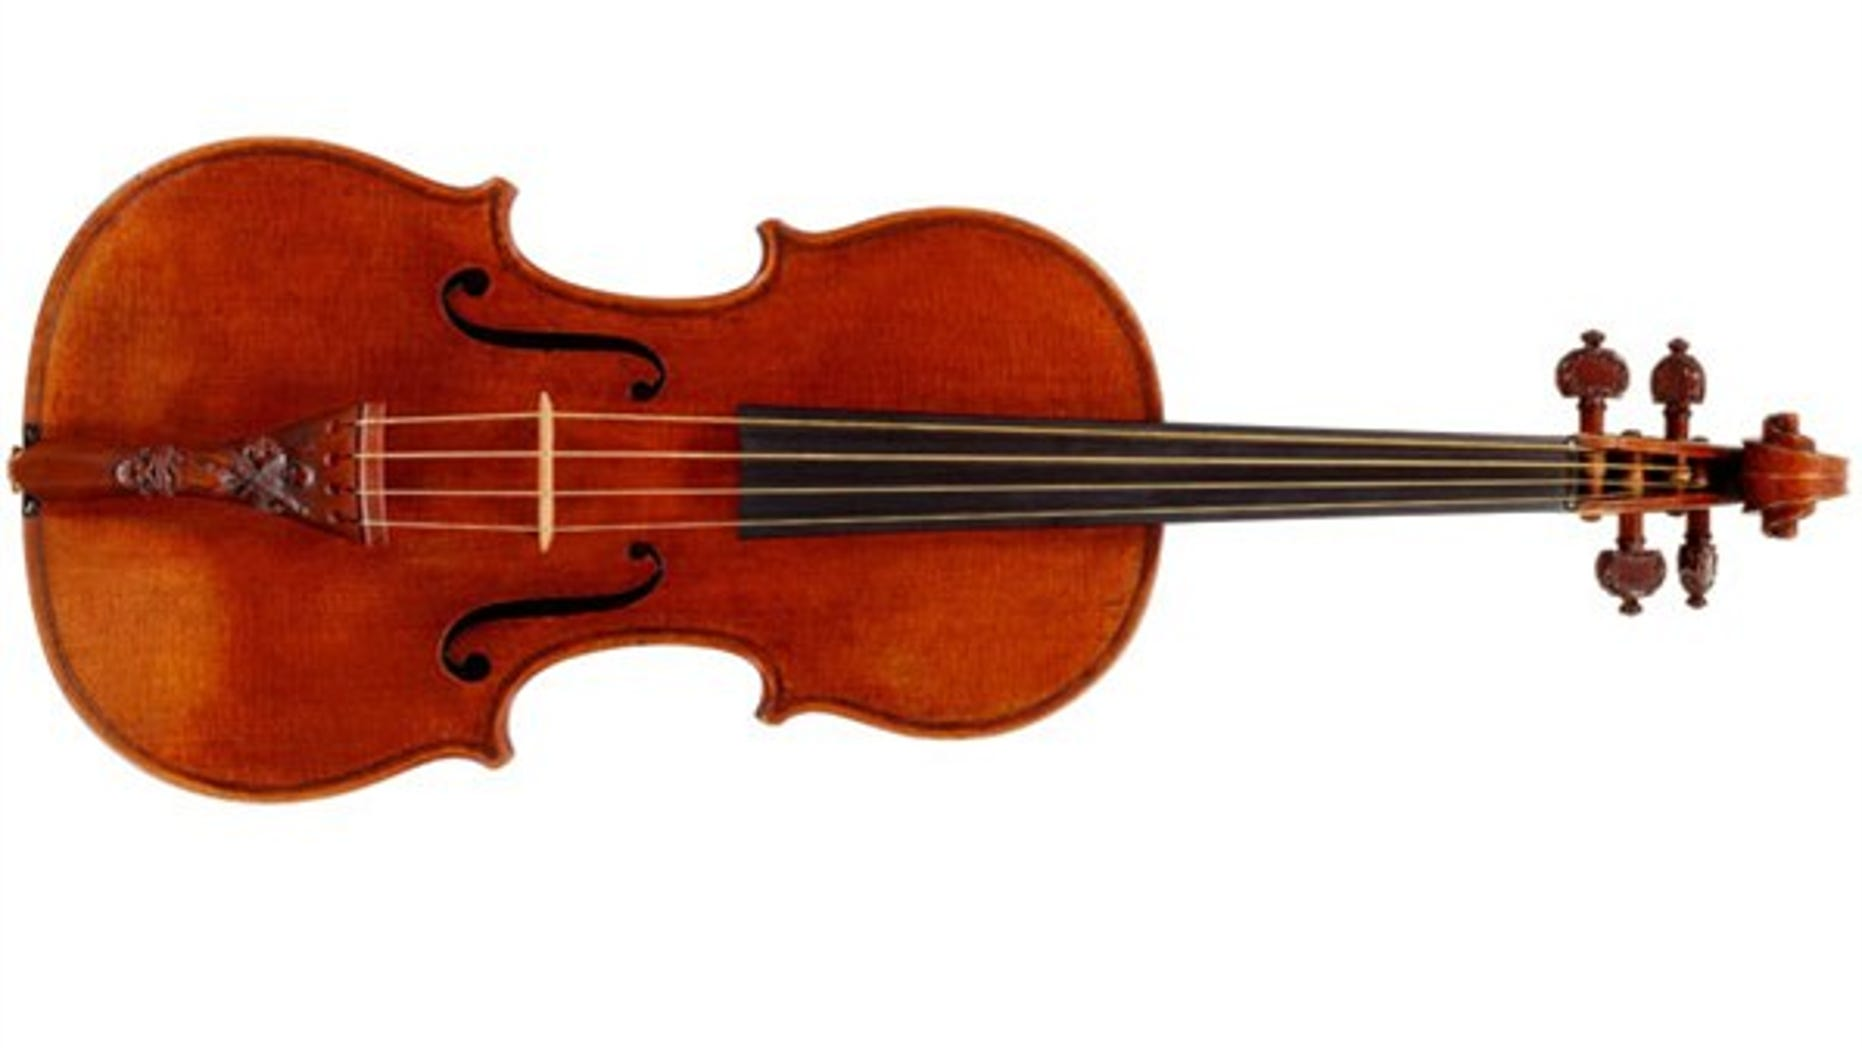 This 1721 Stradivarius violin sold for $16.33 million at auction in 2011. (Reuters)